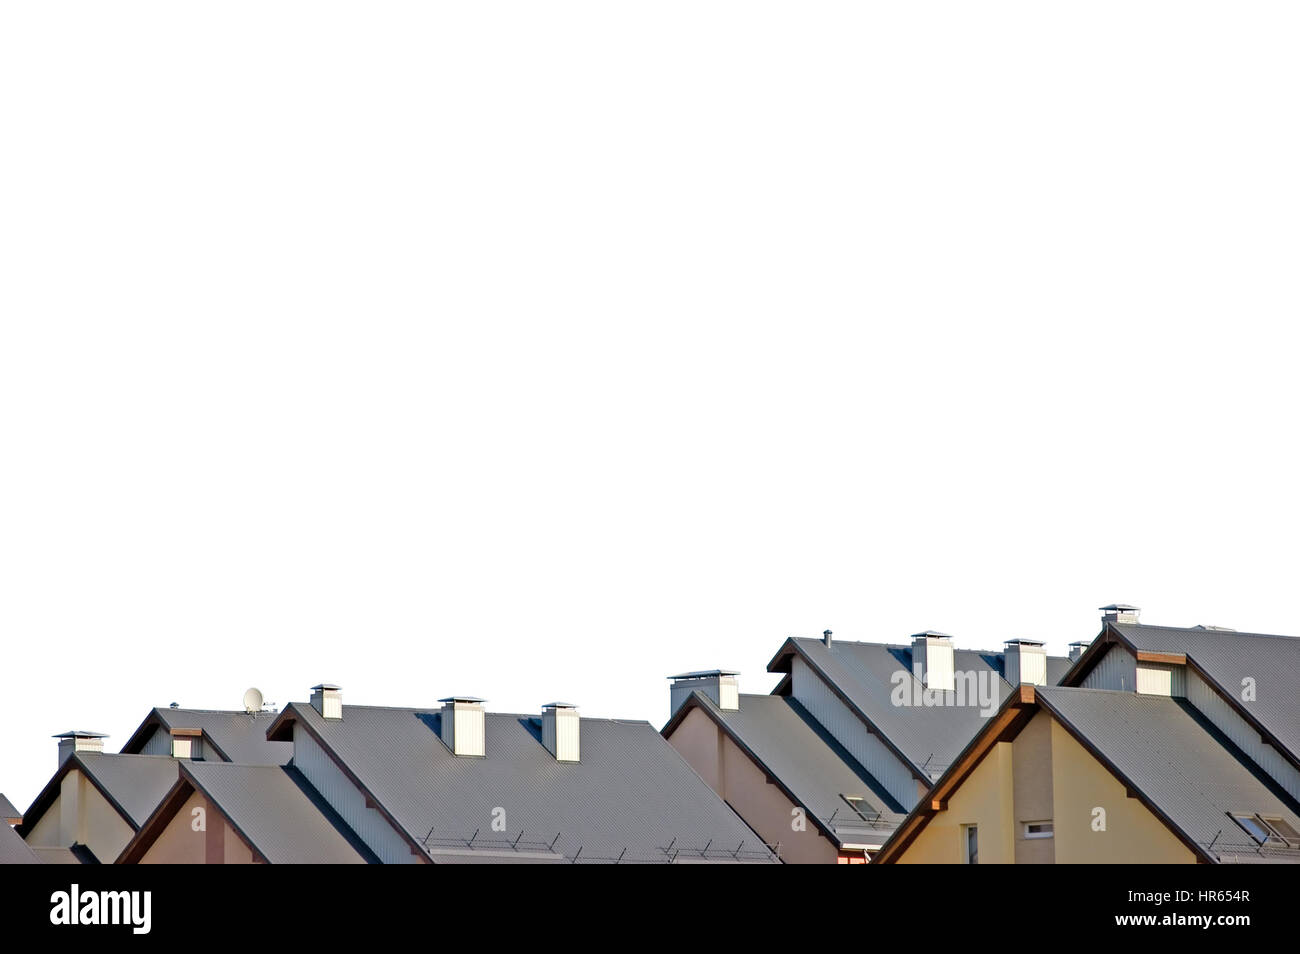 Rowhouse condos roofs panorama, isolated condo apartments rooftops - Stock Image